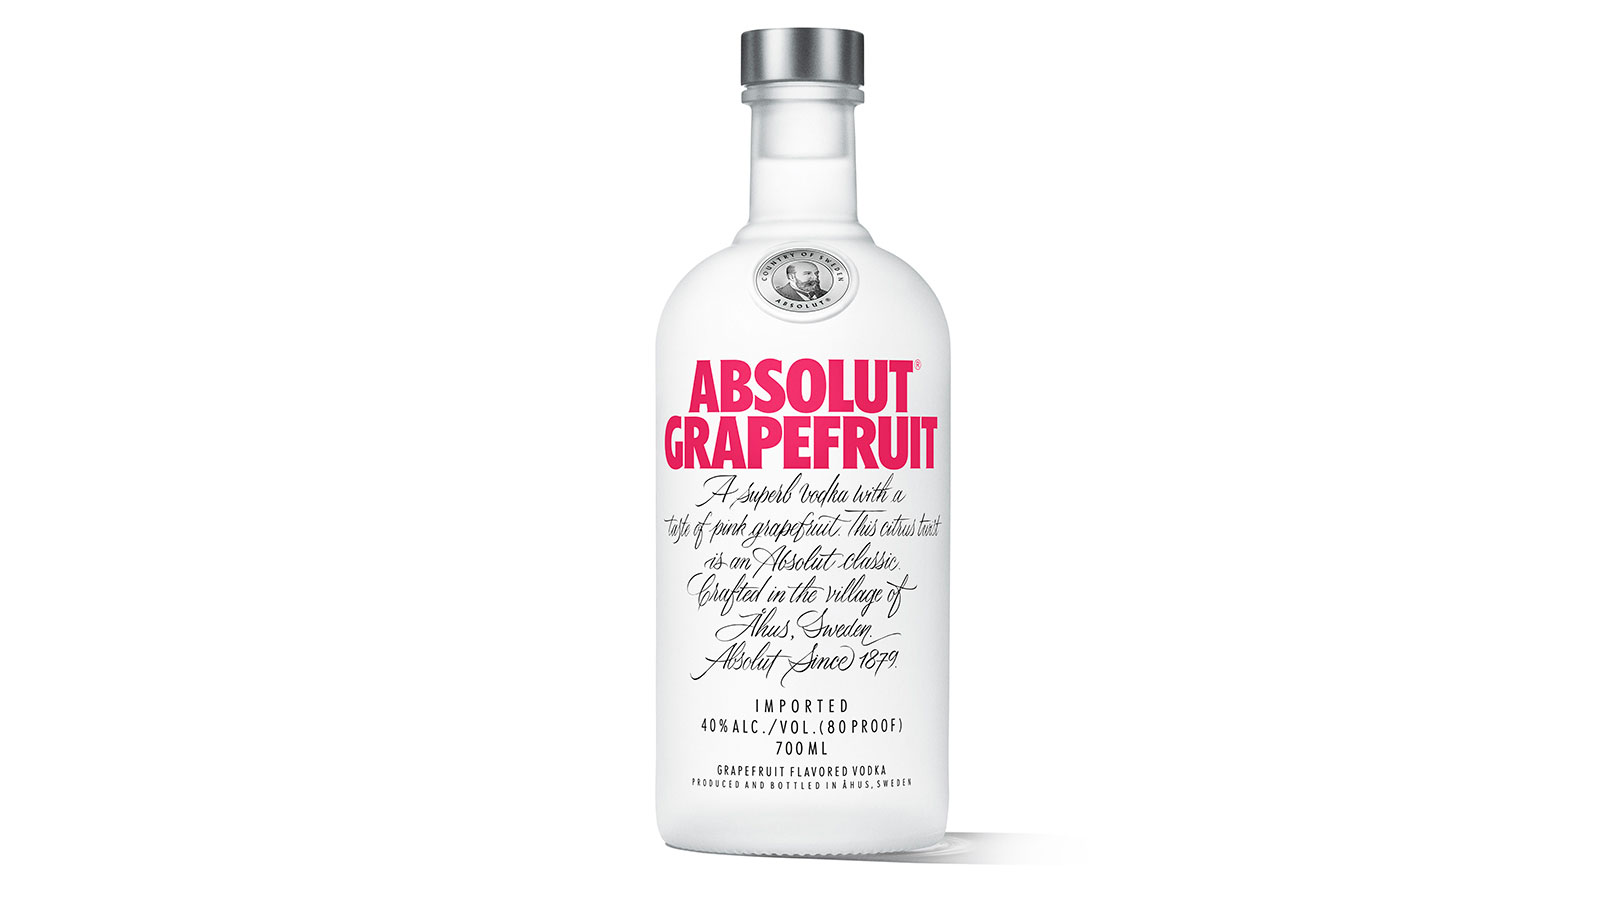 Absolut gets freaking fruity with the launch of Absolut Grapefruit